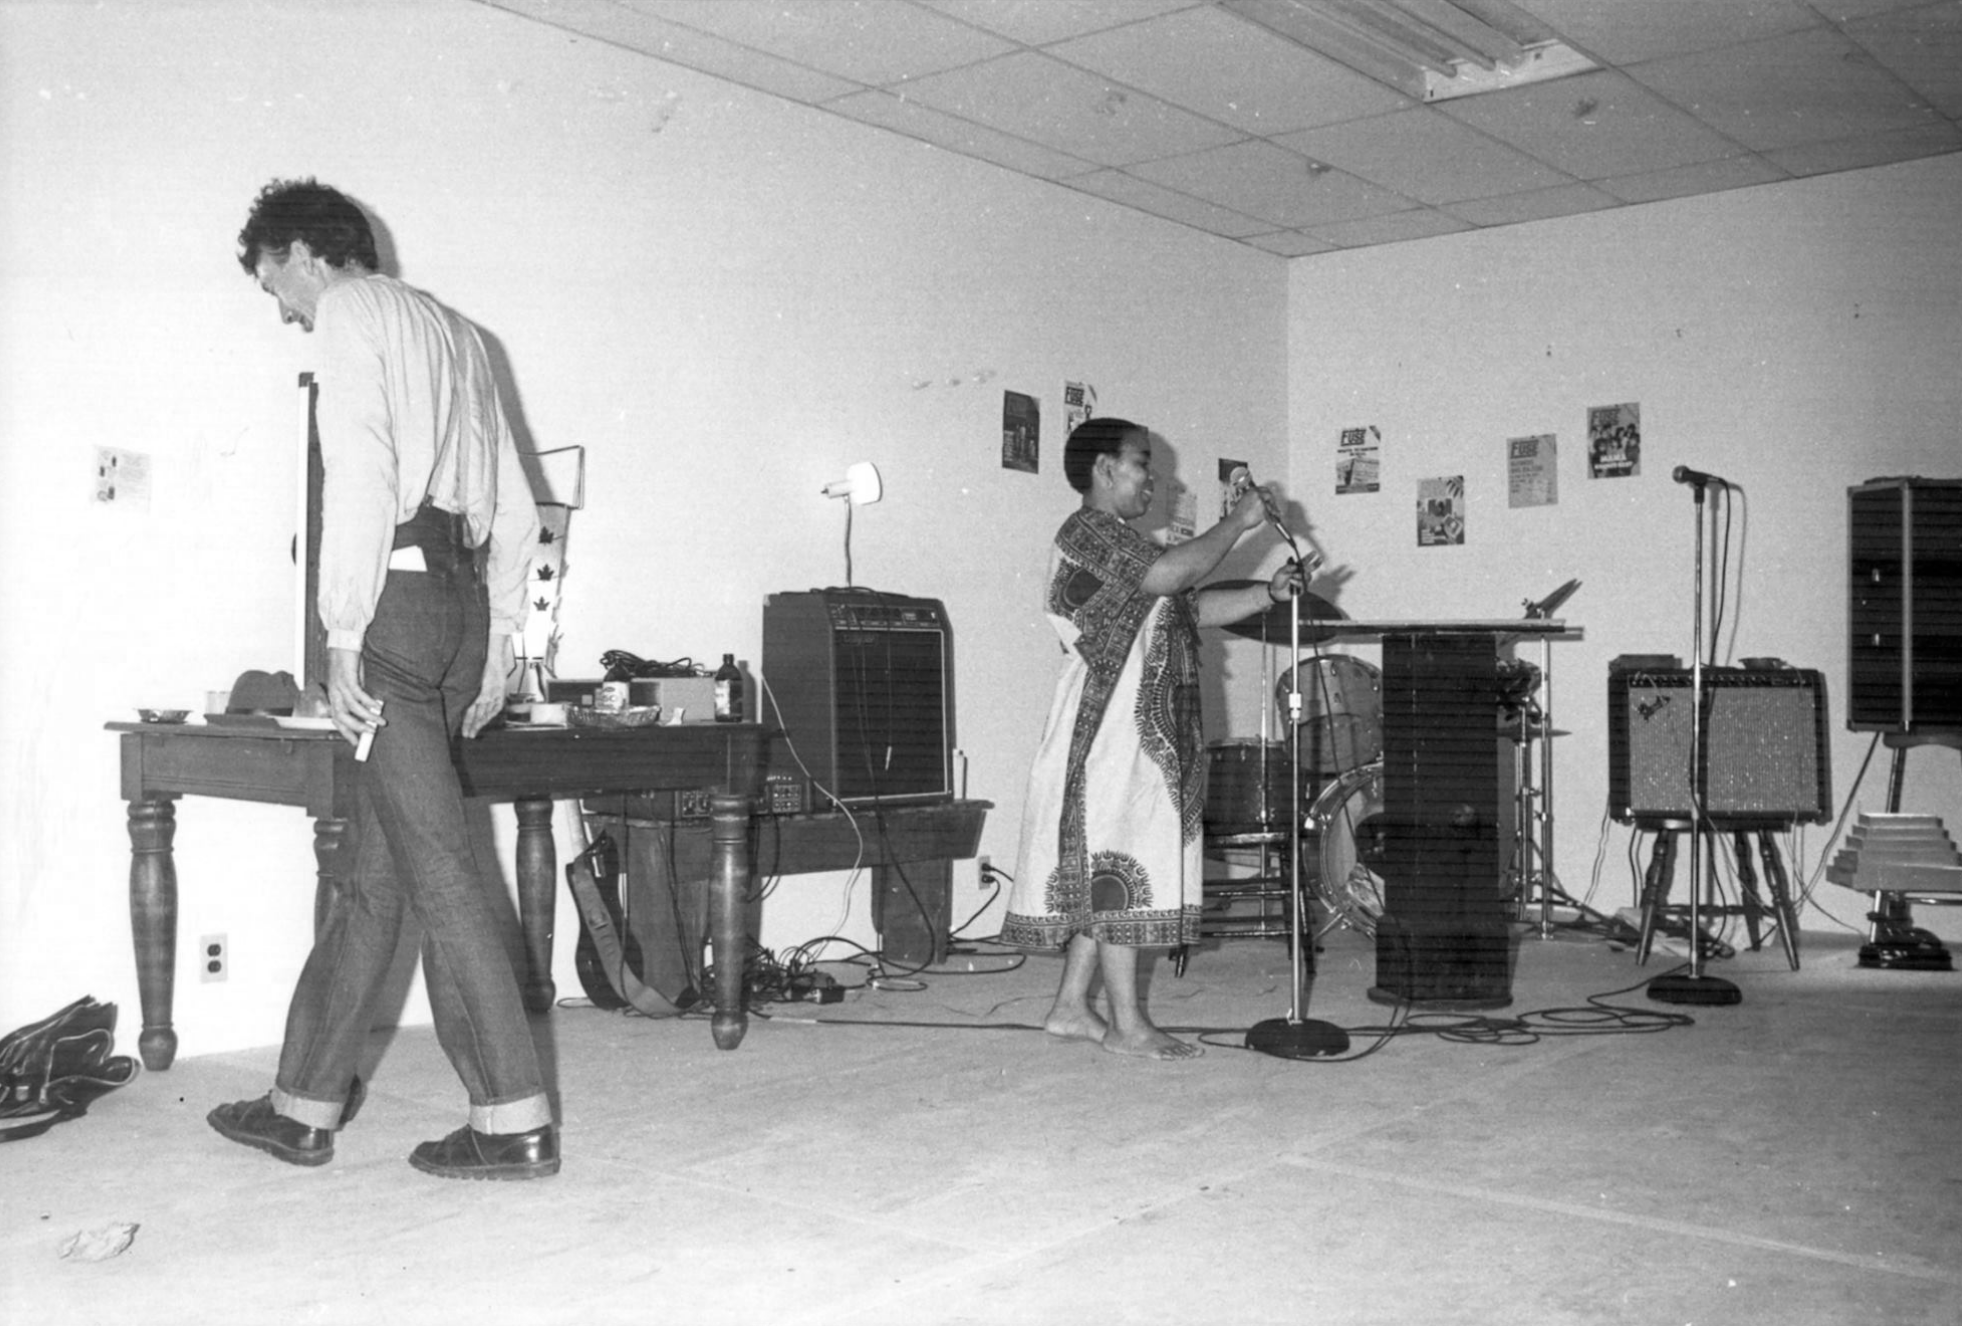 A black and white image of a room with two people standing in it. One faces a wall to the left of a wooden table. The other, a woman, holds a microphone stand. Other microphones and speaker equipment are also in the room nearby.